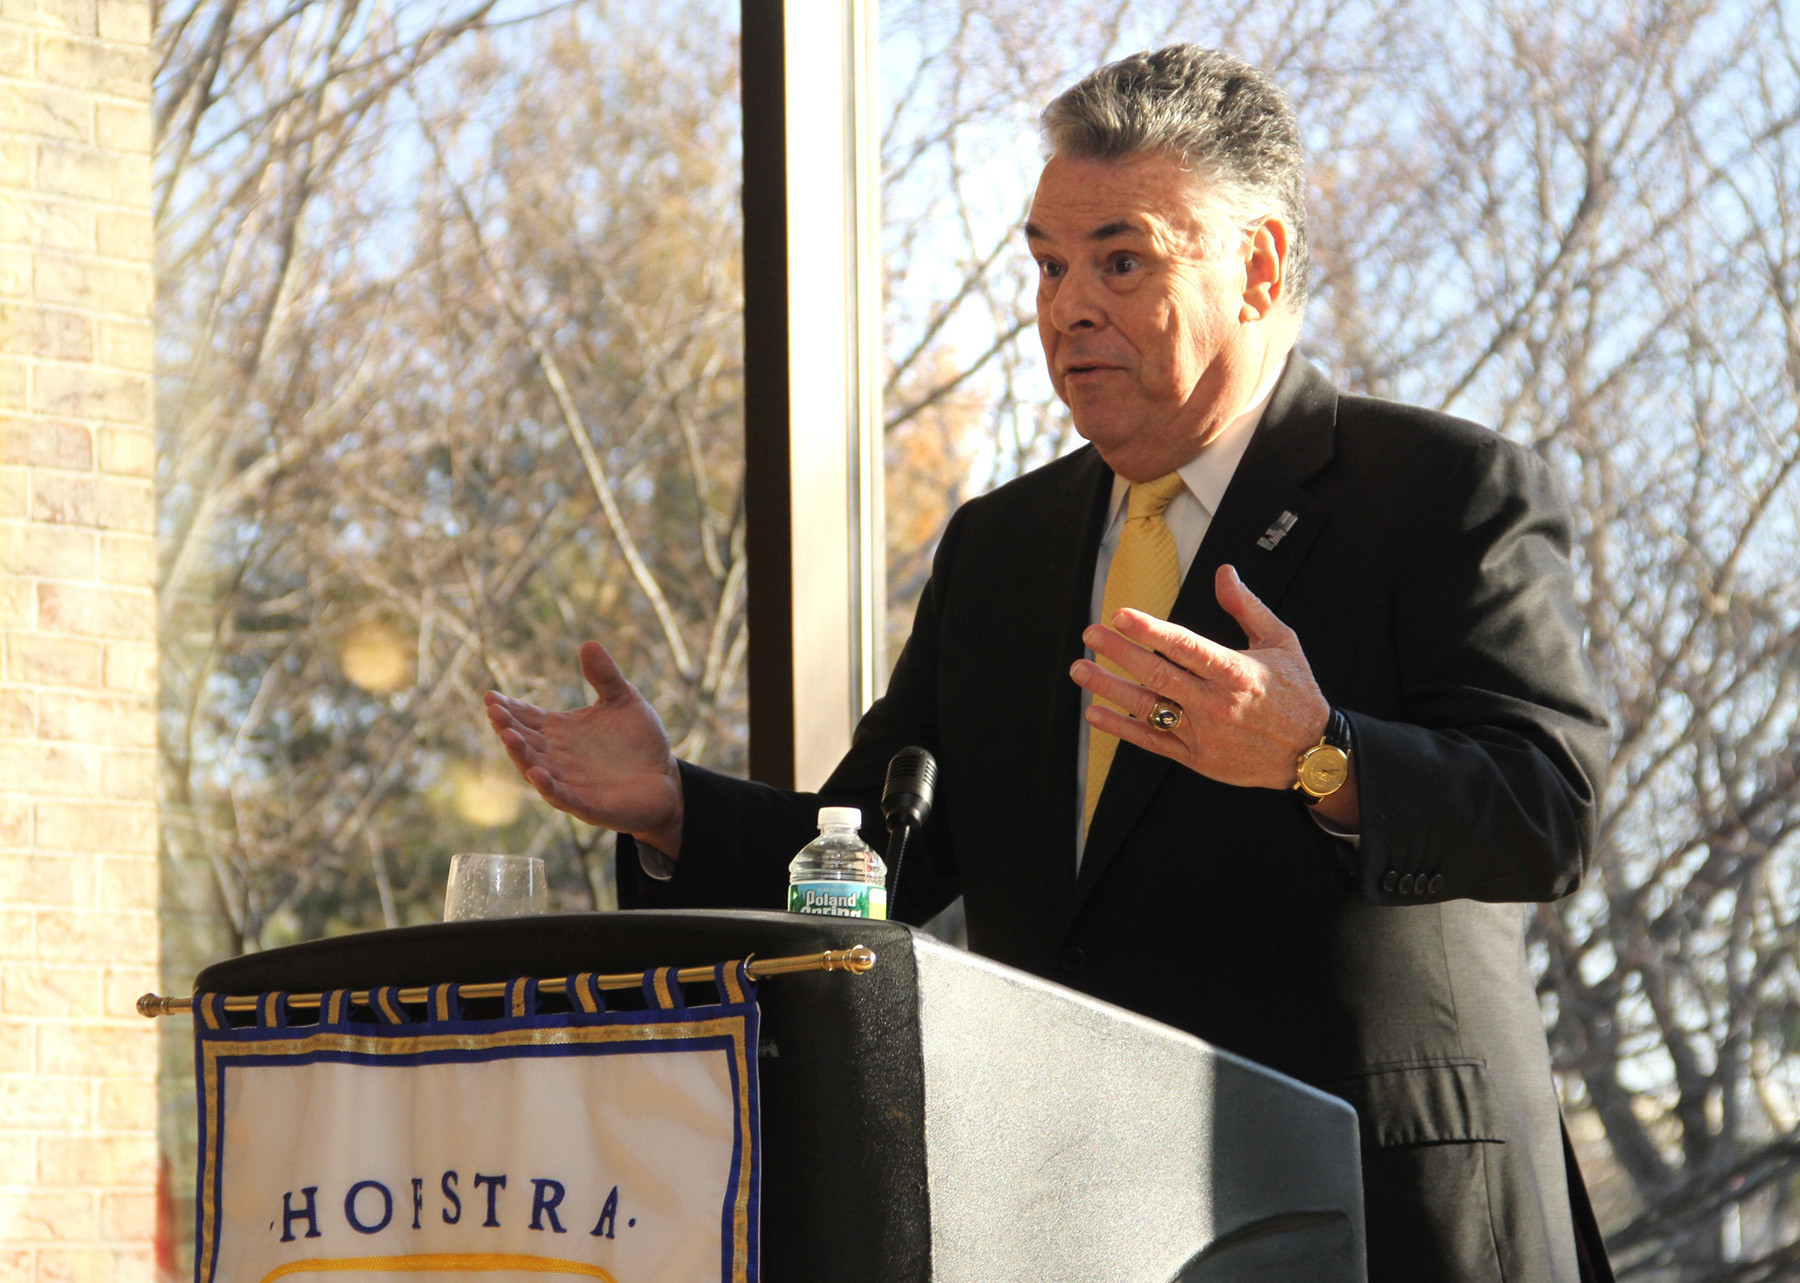 Republican Congressman Peter King, speaking at Hofstra University in March, opposed the House Republican leadership, whom many blame for the shutdown, after Democrats rebuffed Republican demands to delay implementation of the Affordable Health Care Act.